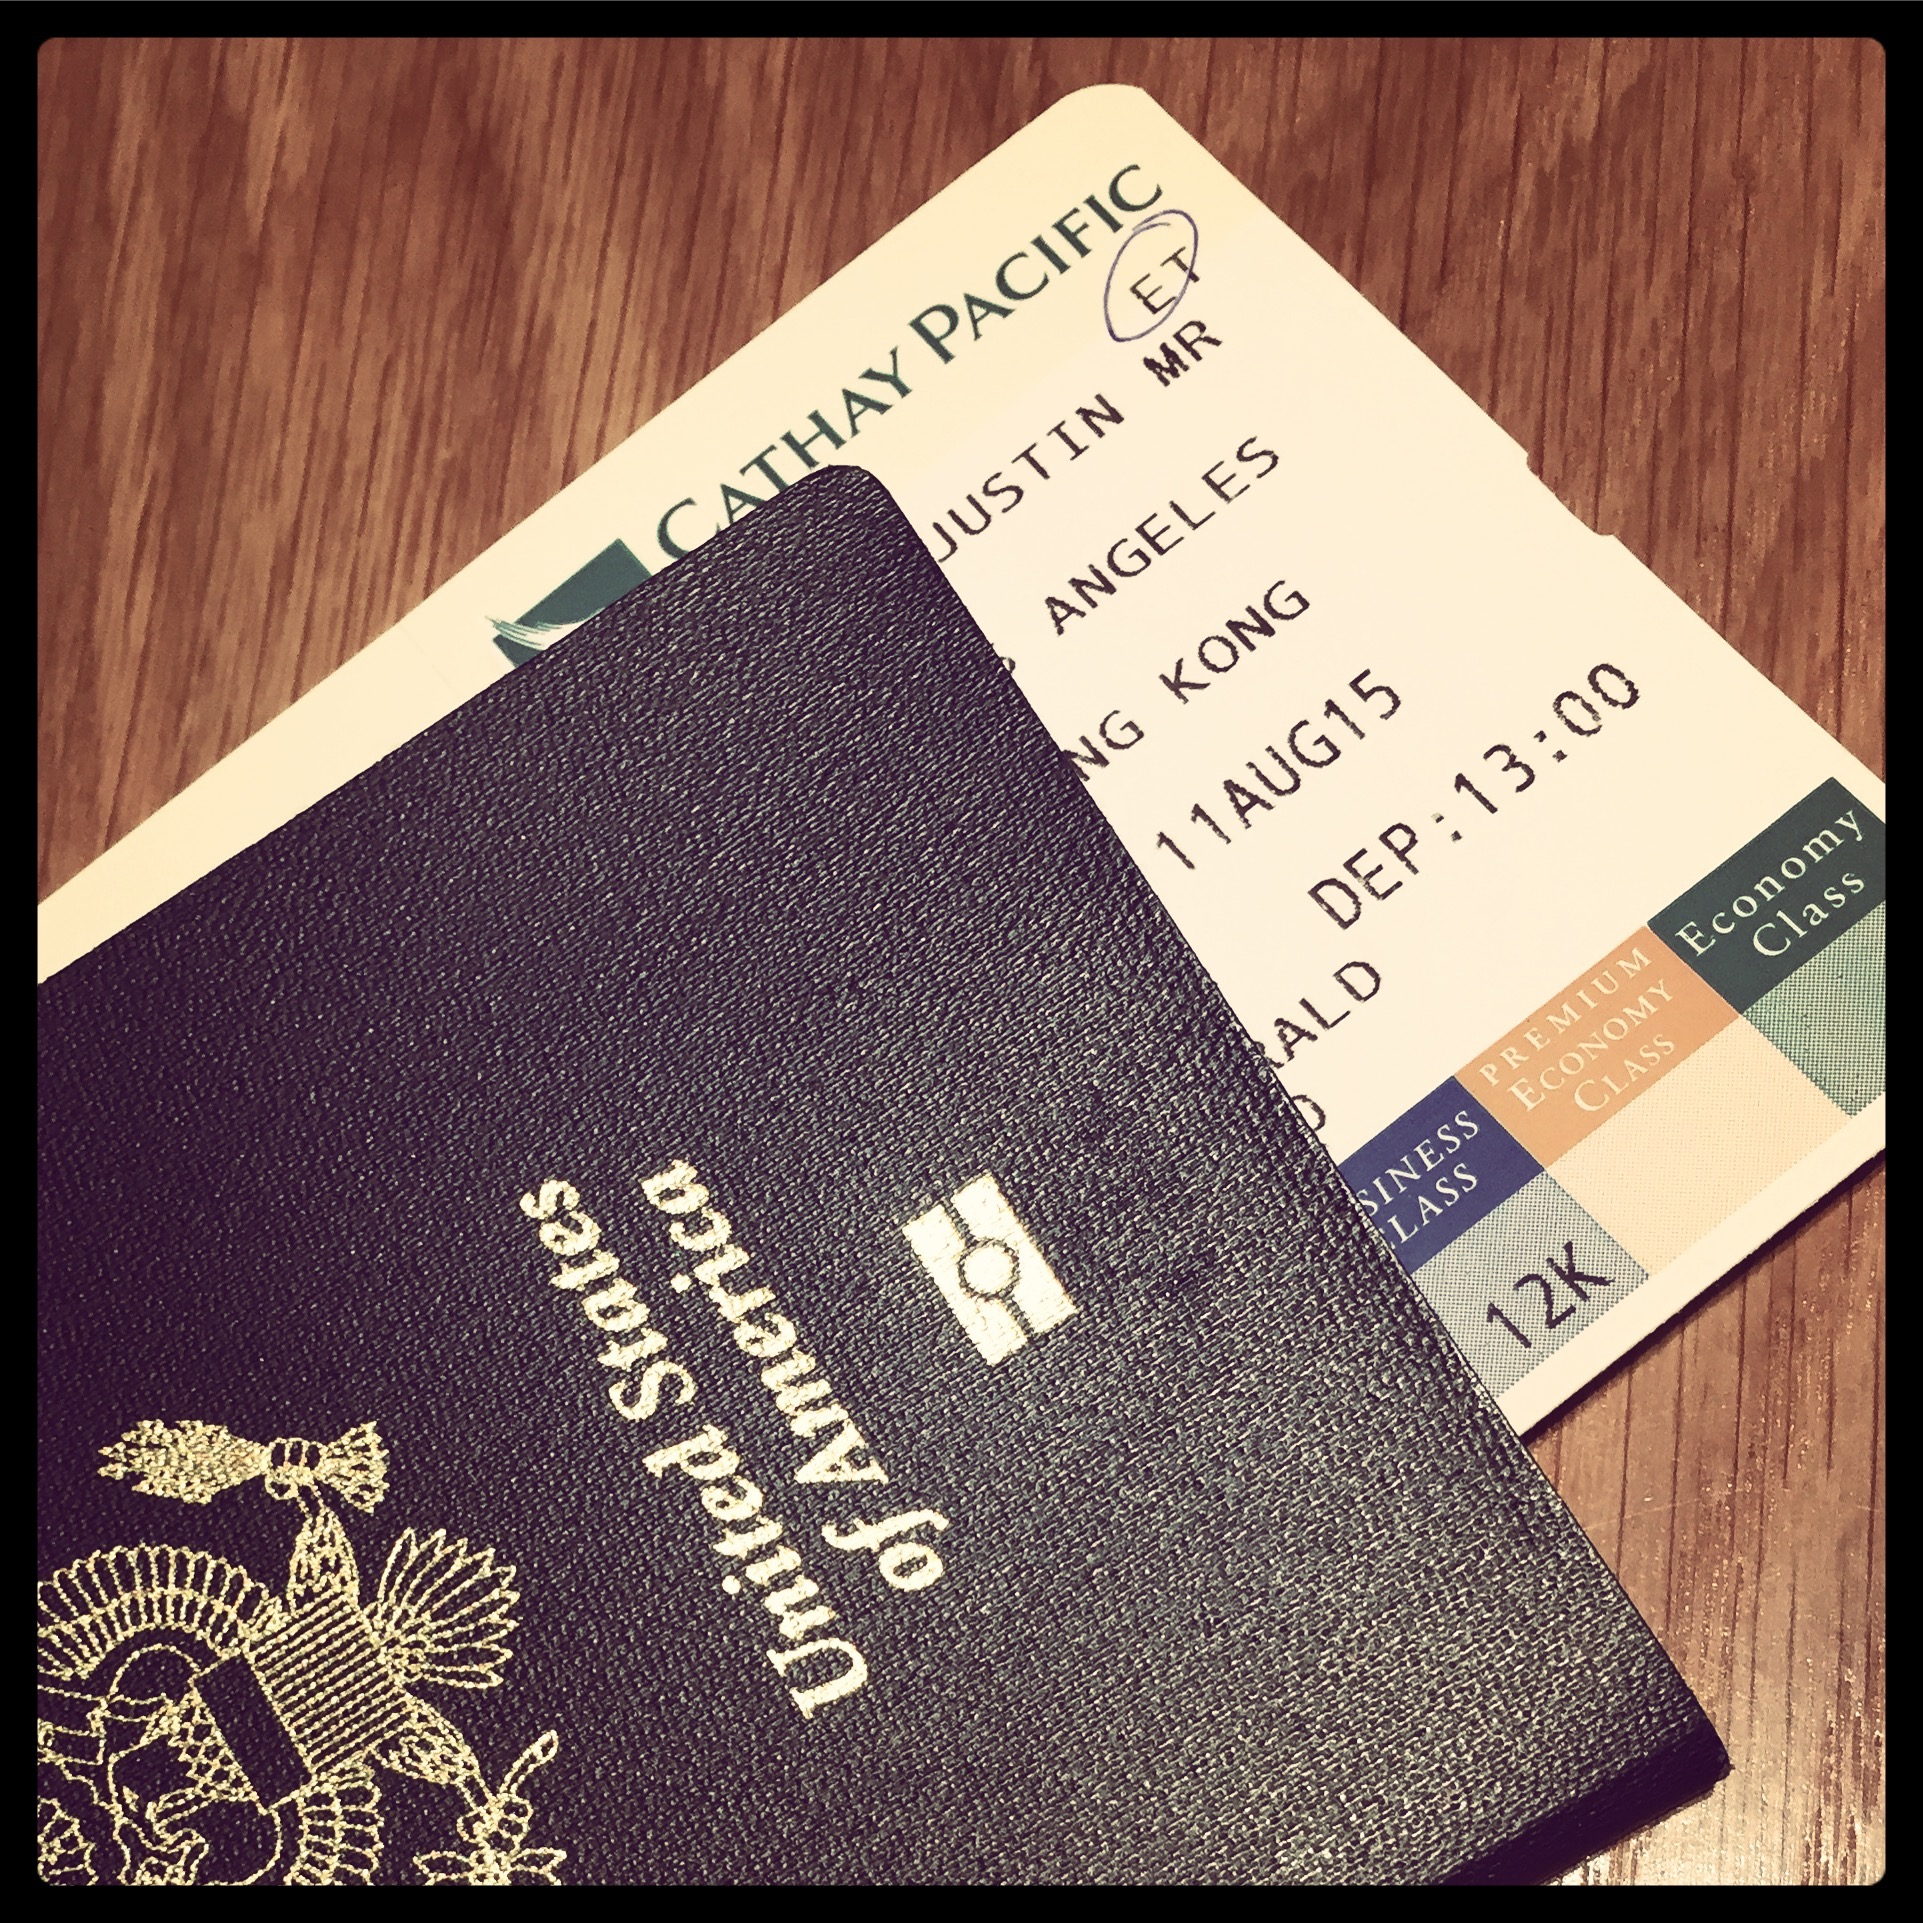 I was super excited for my first time on Cathay Pacific and the first leg of my Round-The-World itinerary.